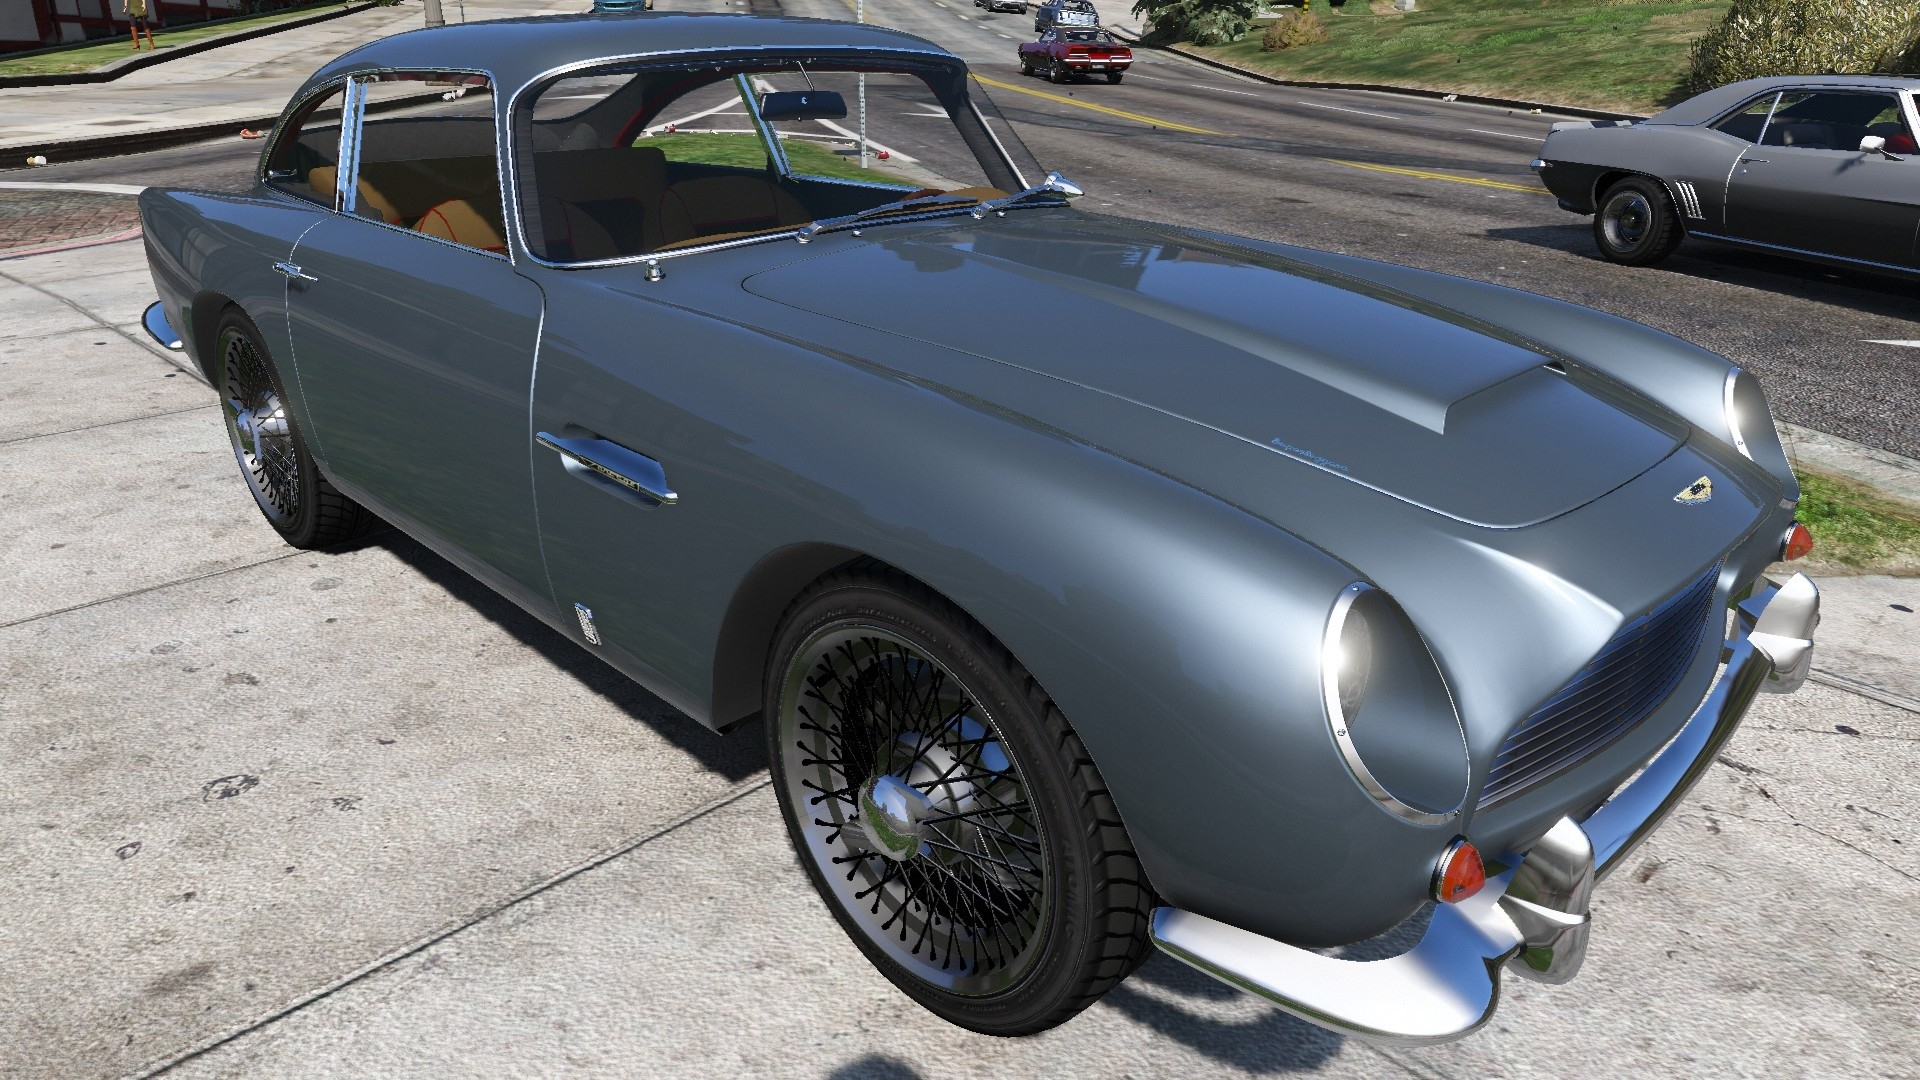 aston martin db5 in gta 5 with 2596 Aston Martin Db5 Vantage 1964 on Diarama further Watch together with Watch likewise Game moreover The Real Life Cars In The Grand Theft Auto 5 2nd Trailer.